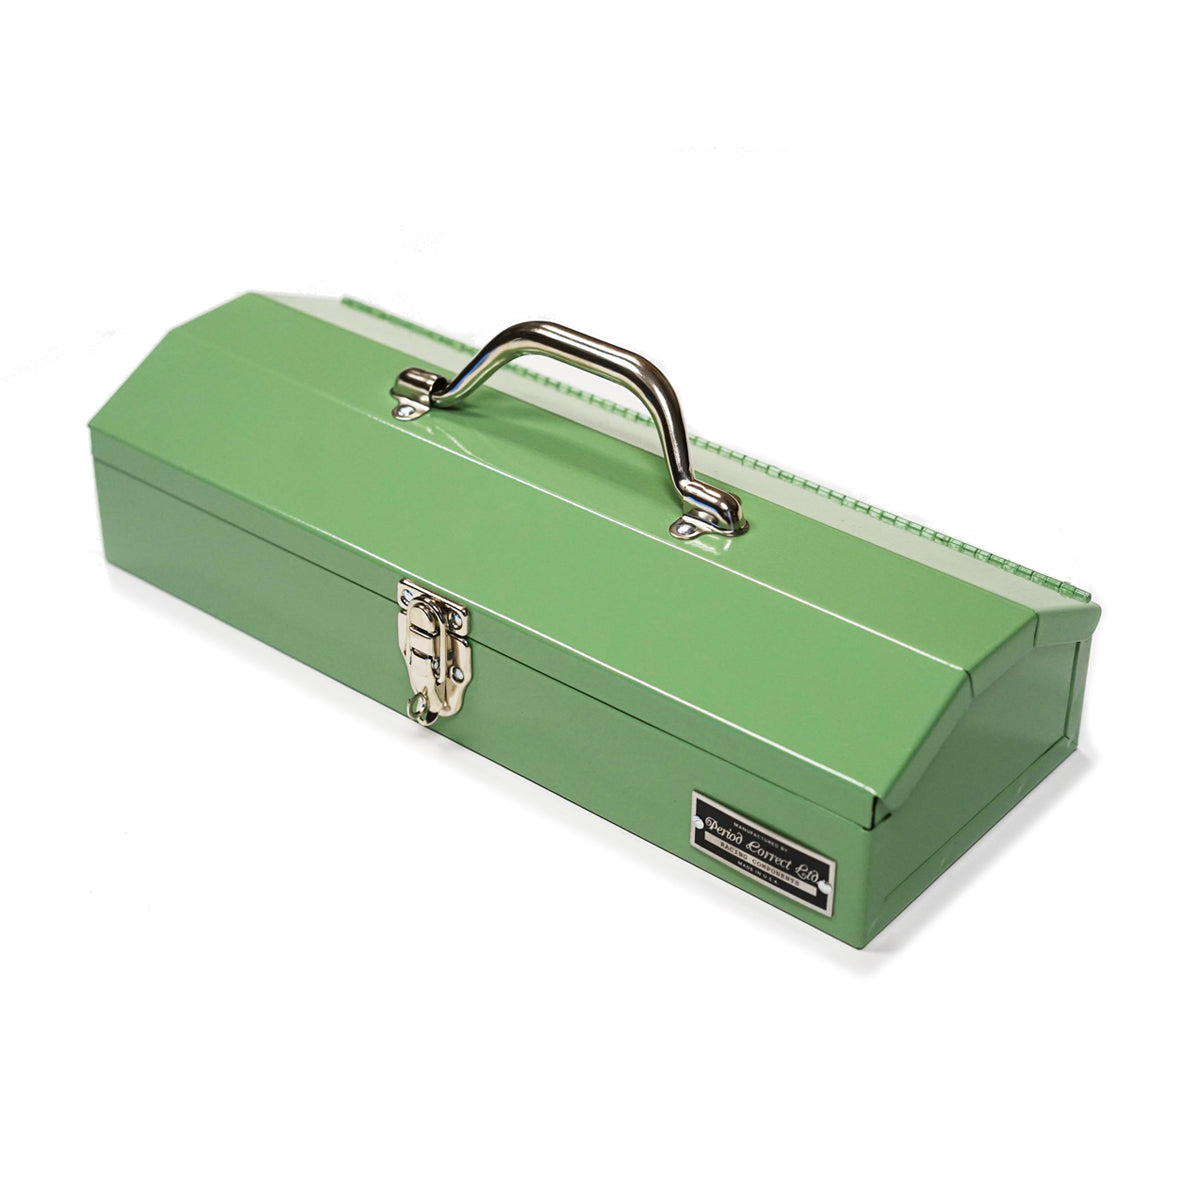 ENGINEERING TOOL BOX GREEN